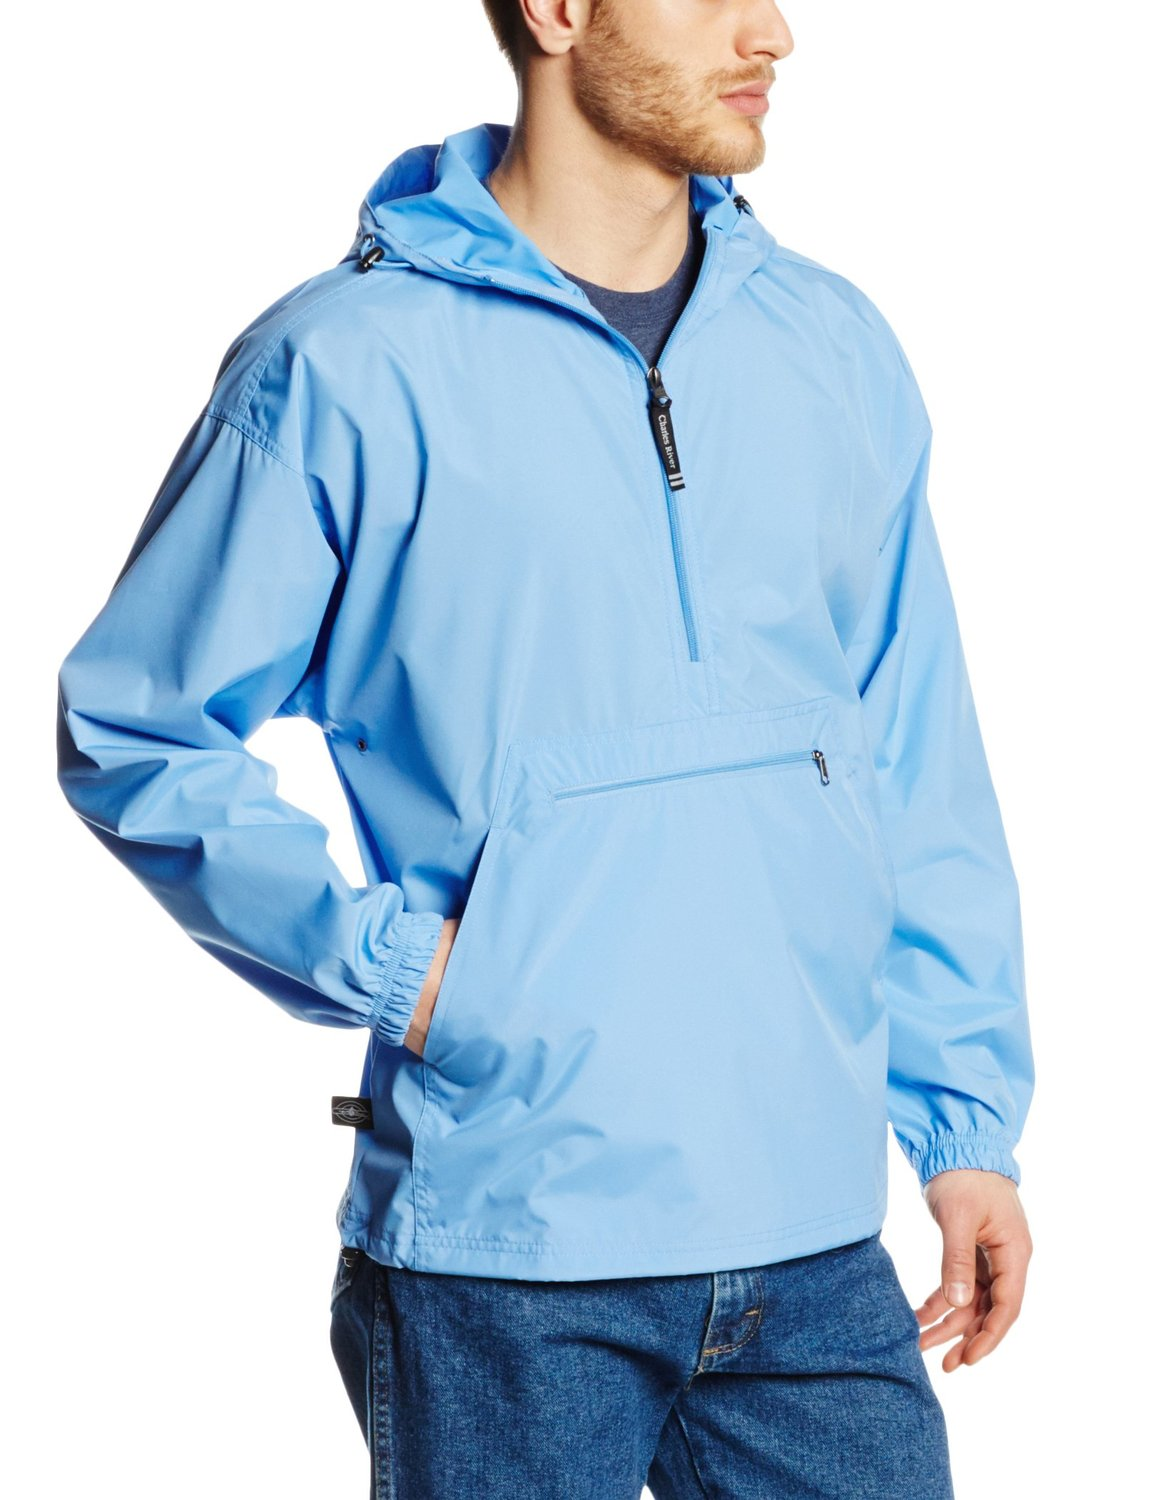 Custom Men's Lightweight Polyester Windbreaker Pullover Jacket ...